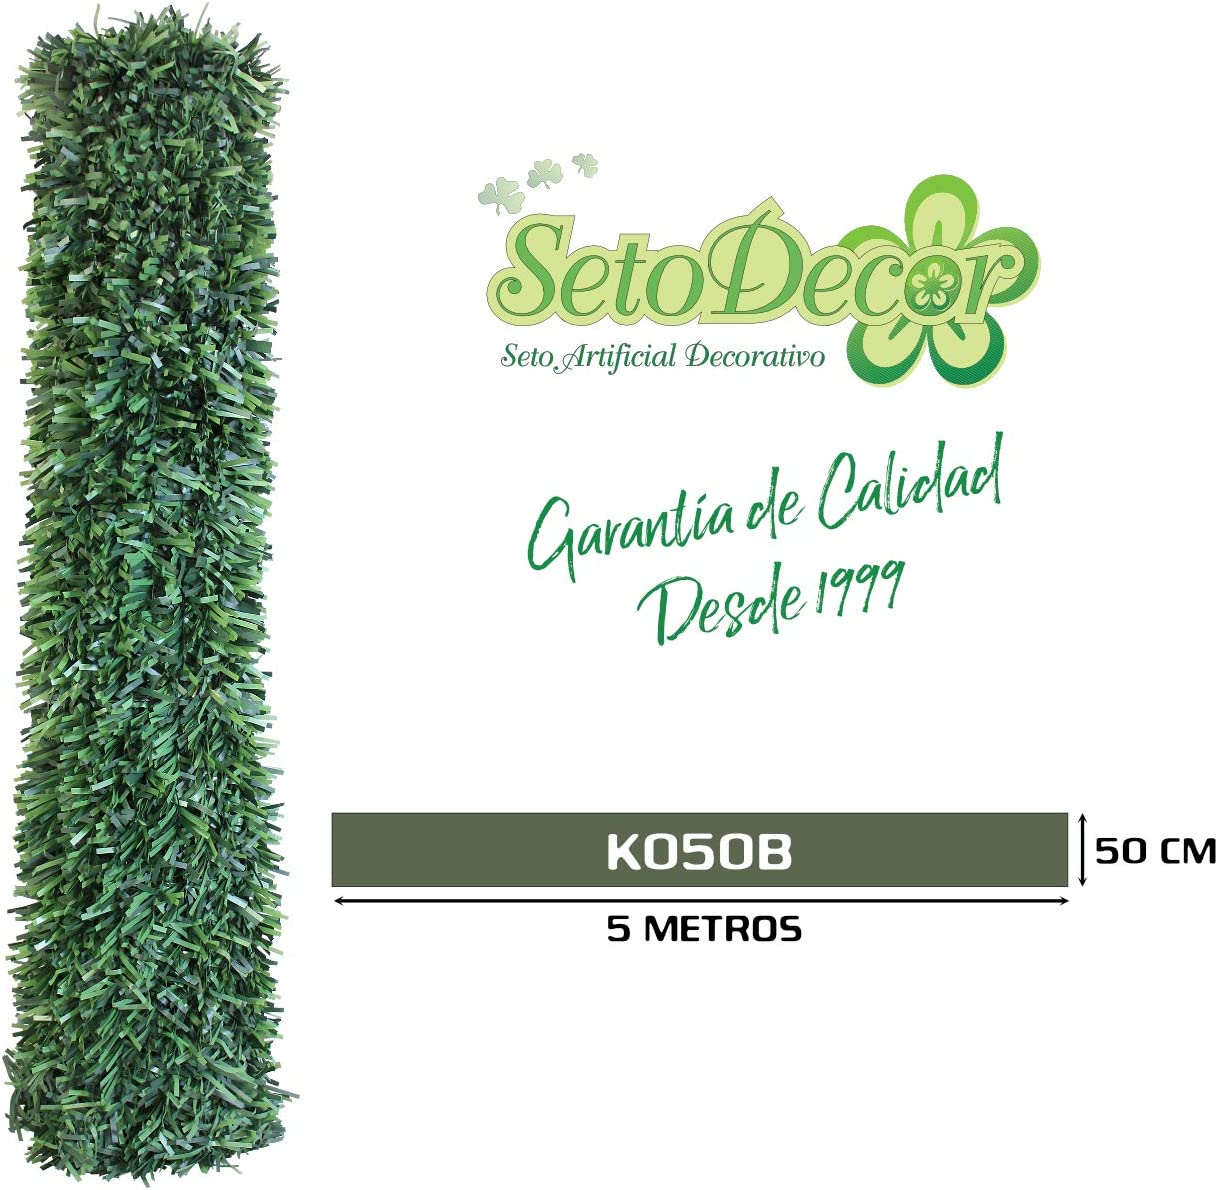 Seto Decor K050B Seto Artificial Decorativo de Hoja Normal de 0, 5 x 5 Metros, Color Verde: Amazon.es: Jardín